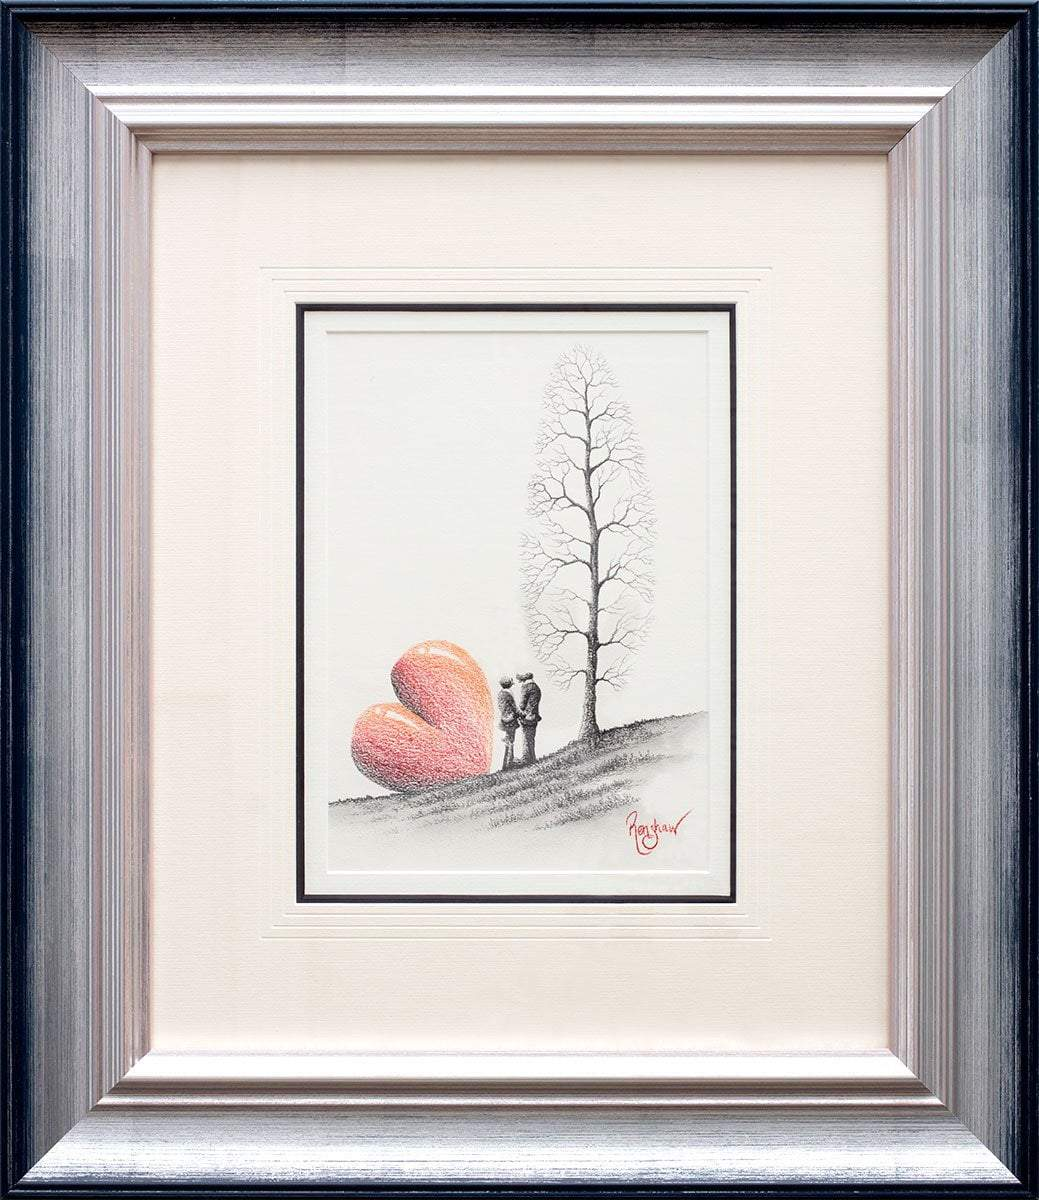 Forget Me Not - Original Sketch David Renshaw Framed